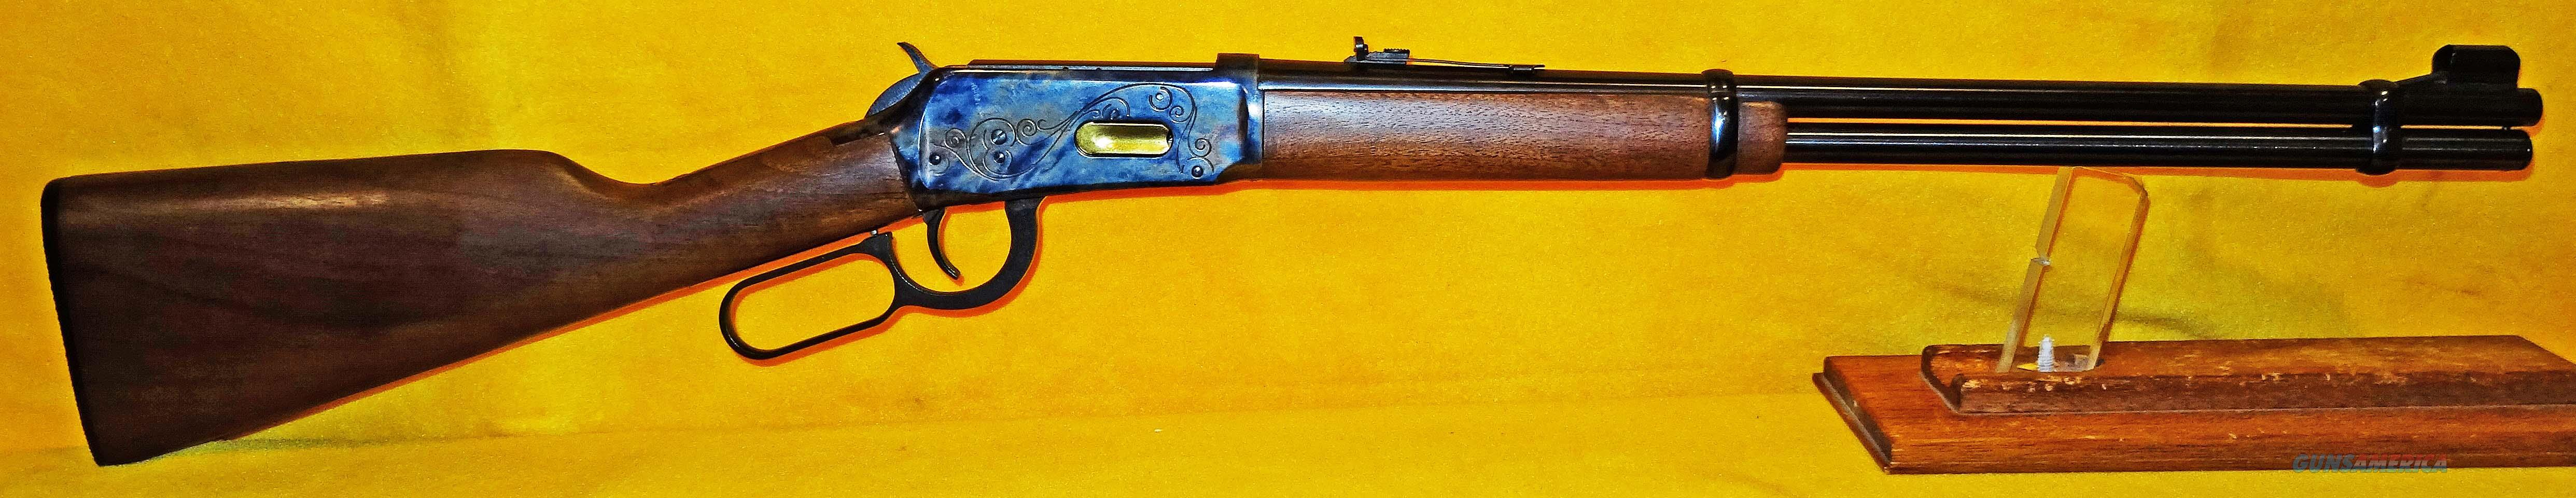 WINCHESTER 94 (ANTIQUE SADDLE RING RIFLE)  Guns > Rifles > Winchester Rifles - Modern Lever > Model 94 > Post-64